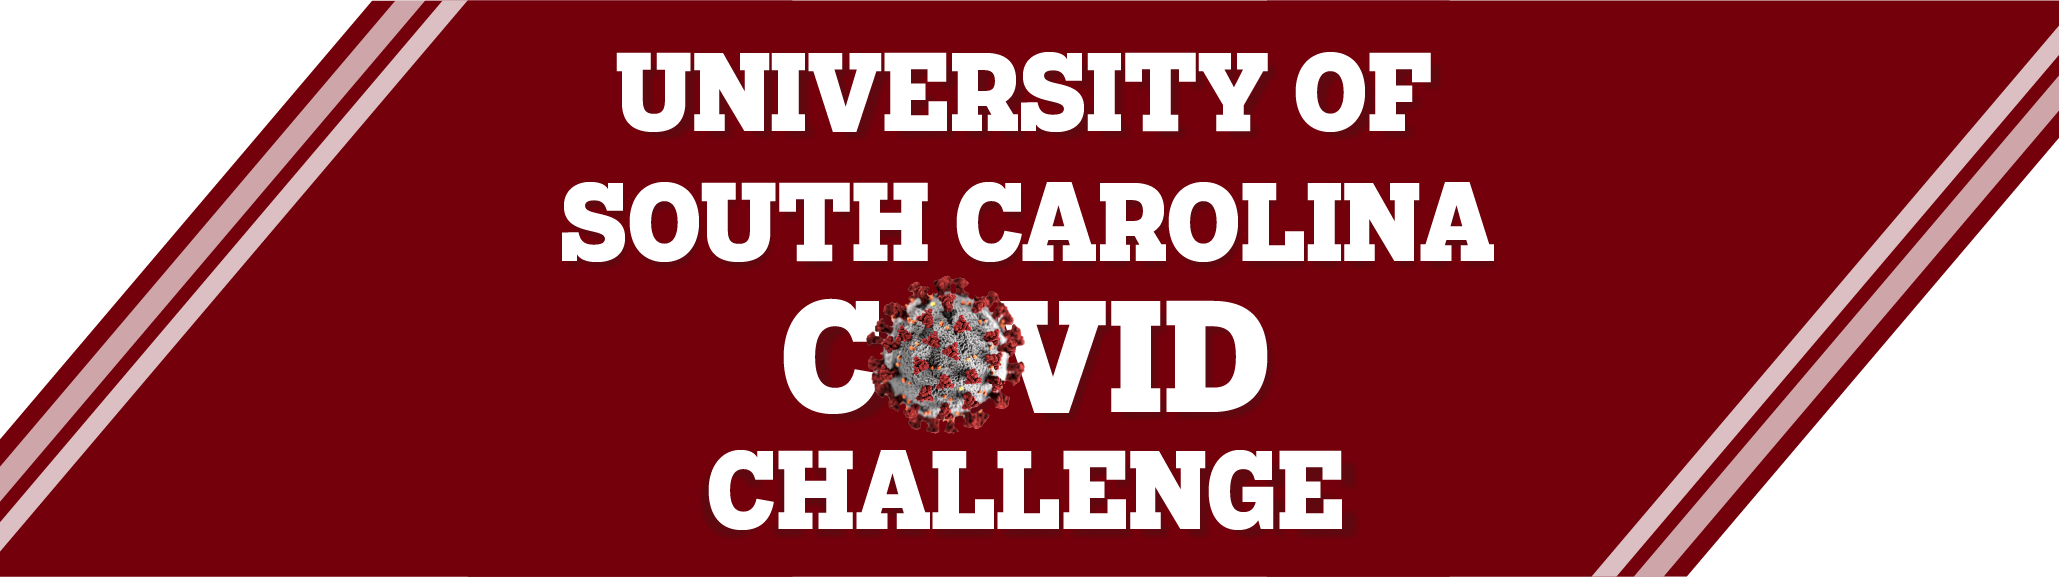 Banner highlighting University of South Carolina COVID challenge